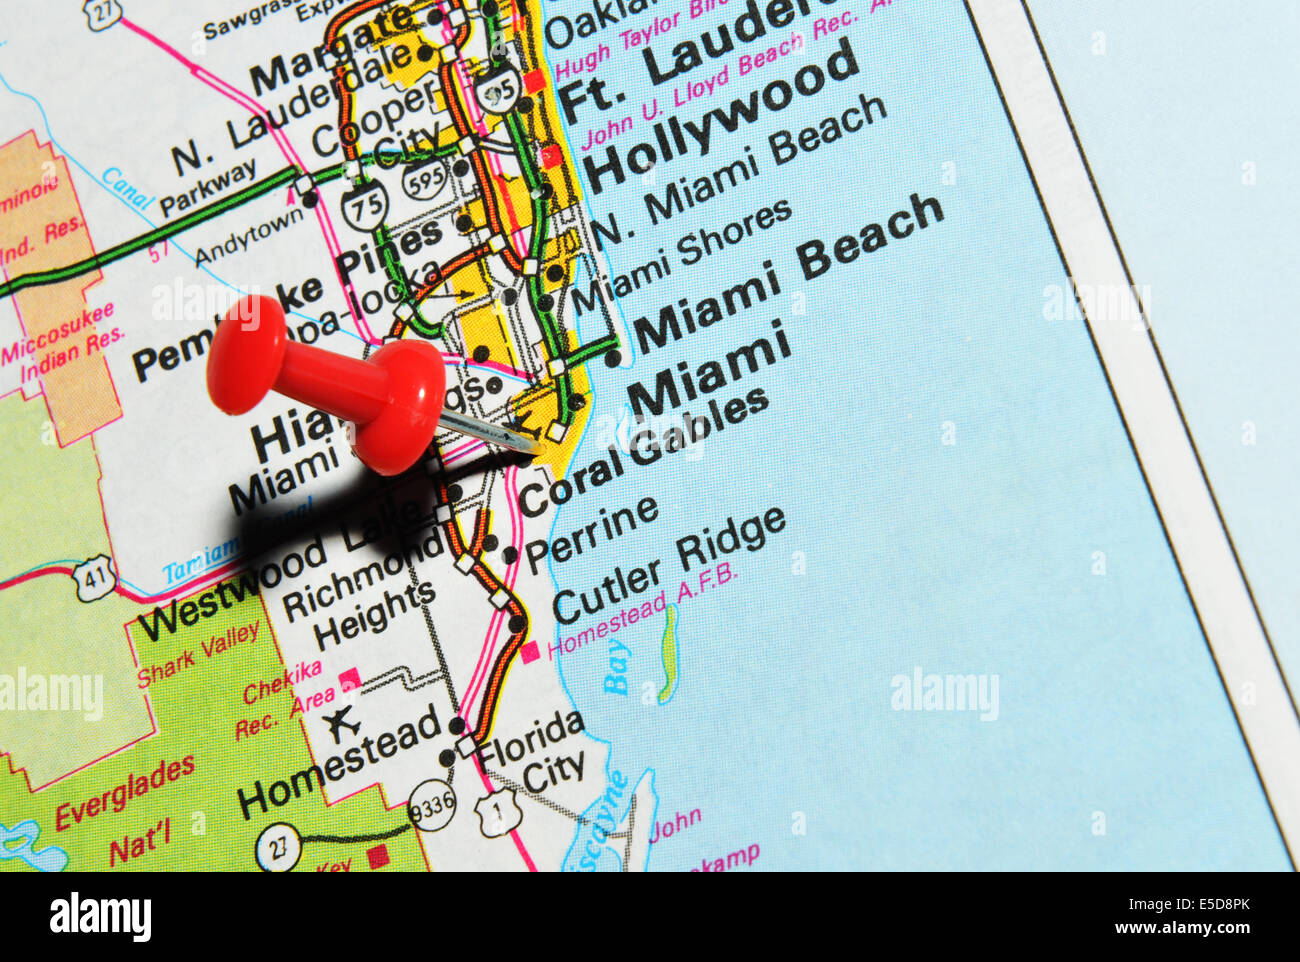 miami on us map stock photo: 72207035 - alamy